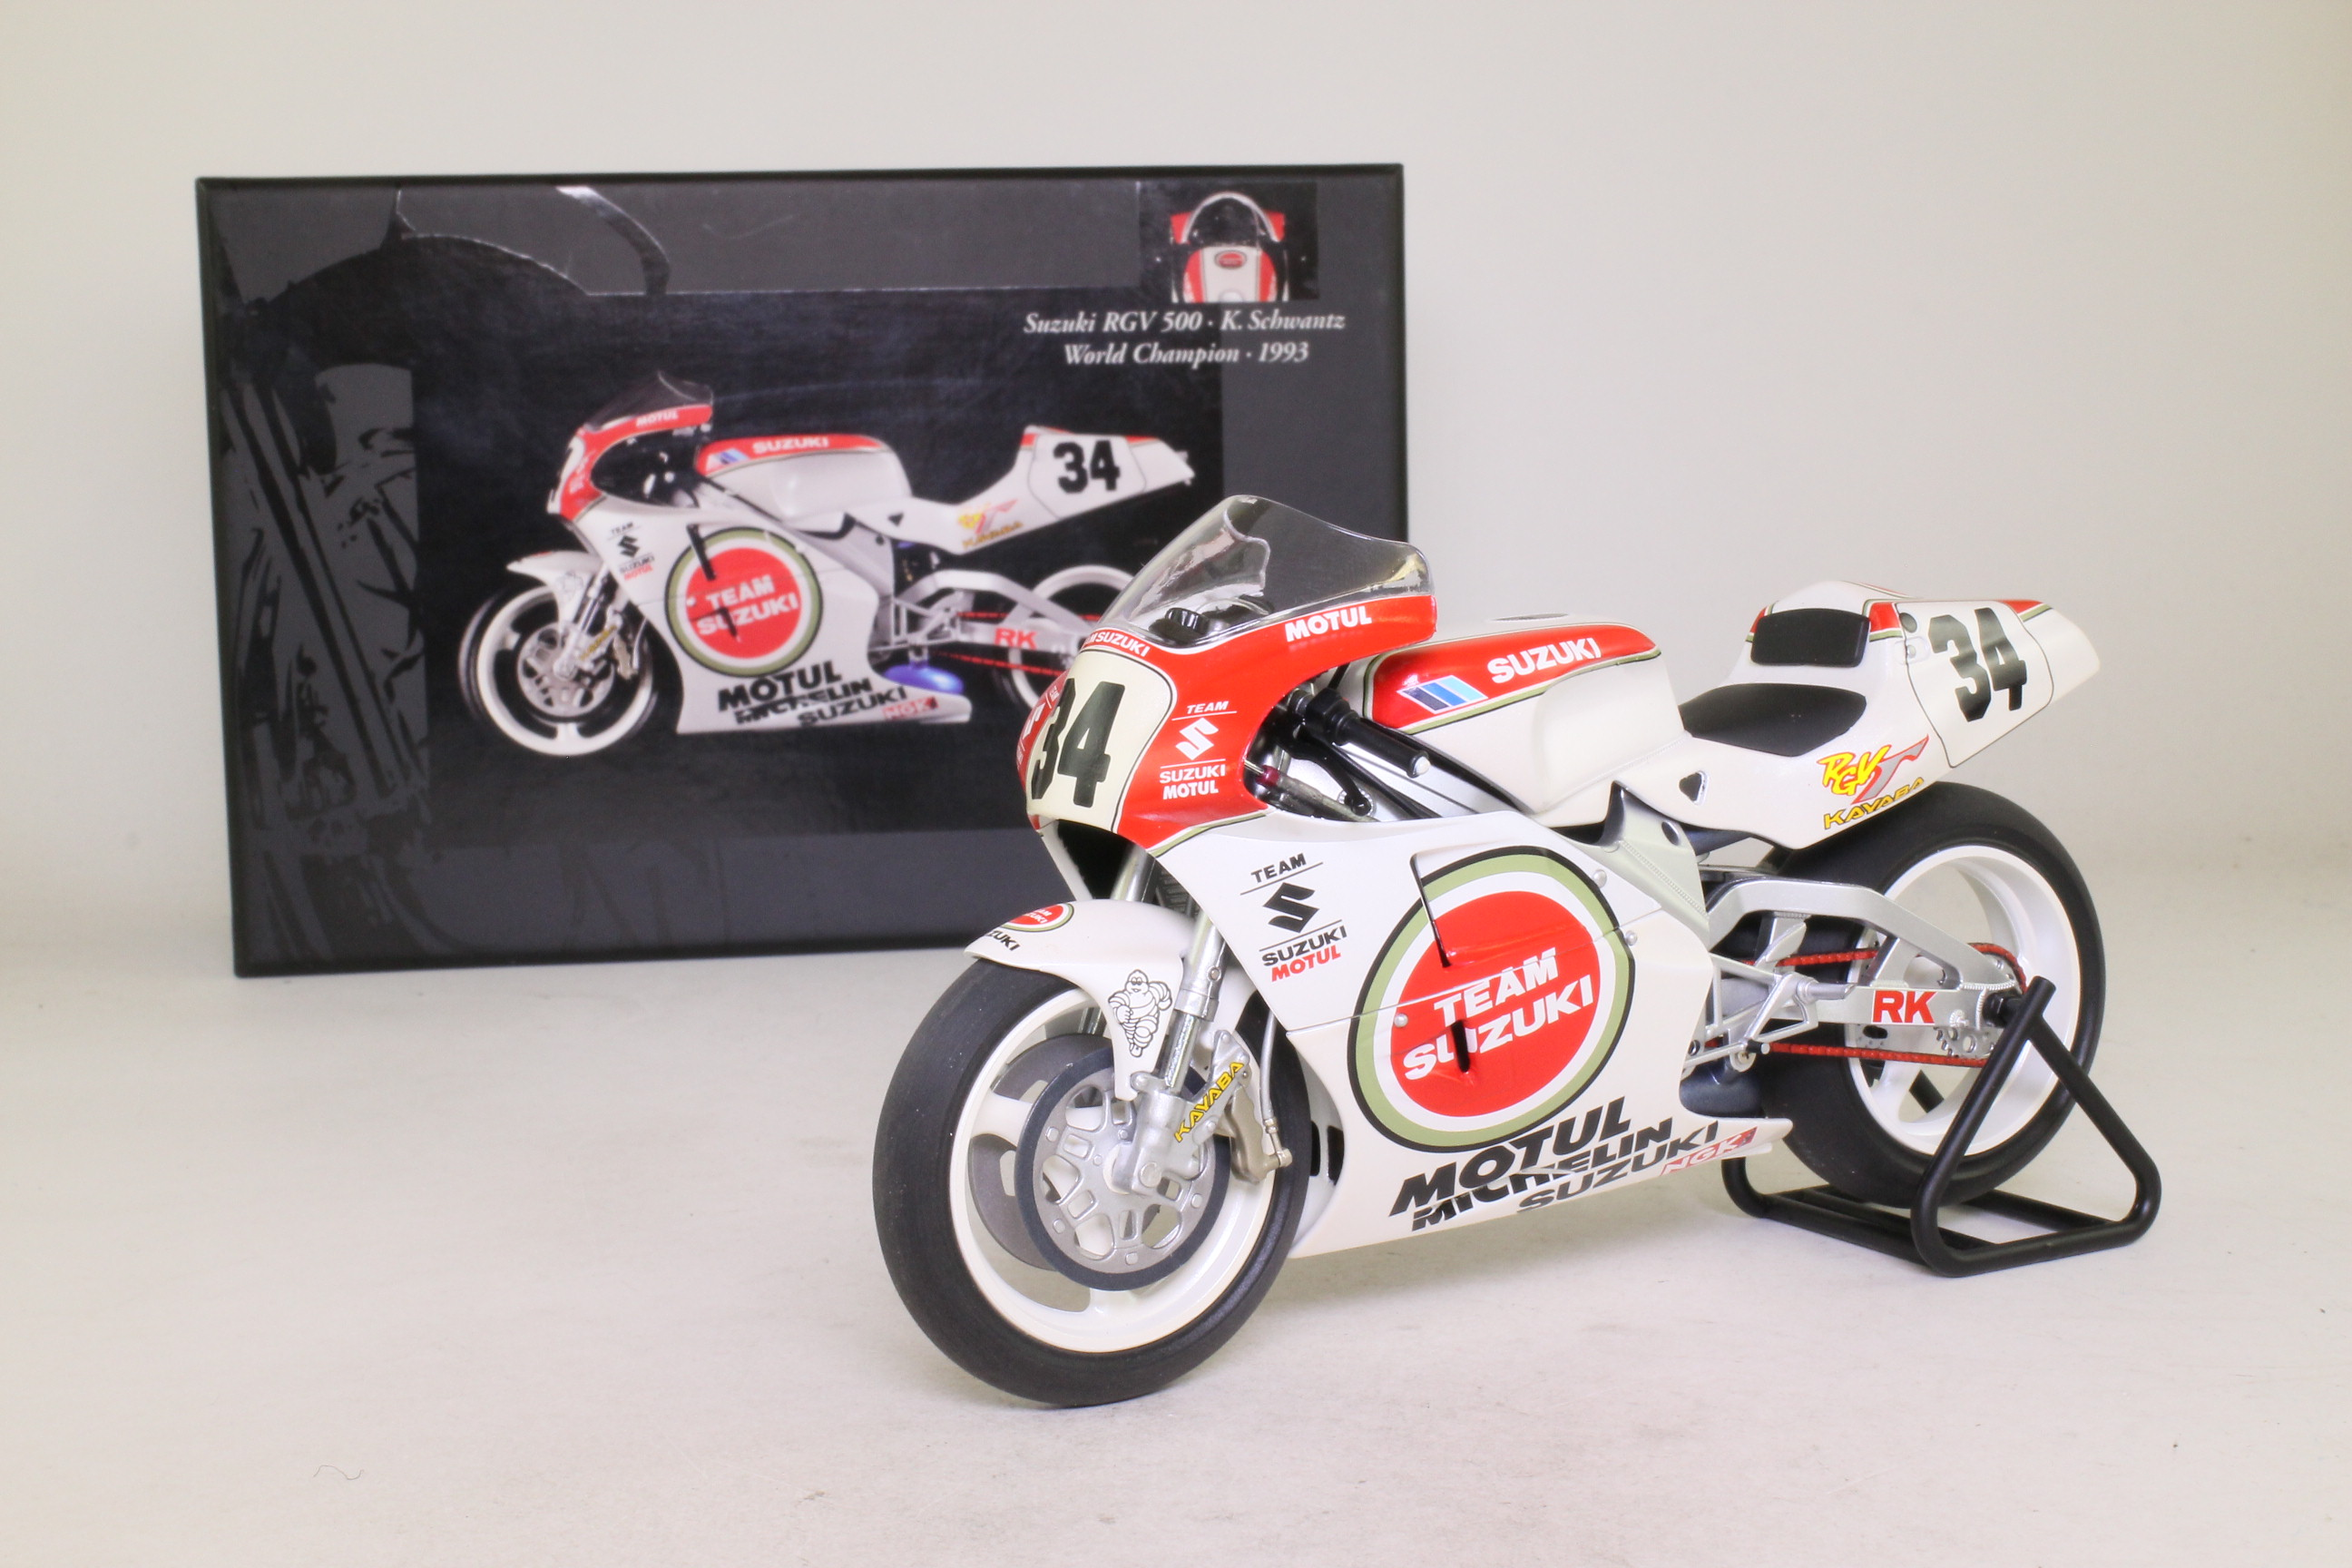 Minichamps 122 932034; Suzuki RGV 500 Motorcycle; 1993 World Champion; K Schwantz; RN34